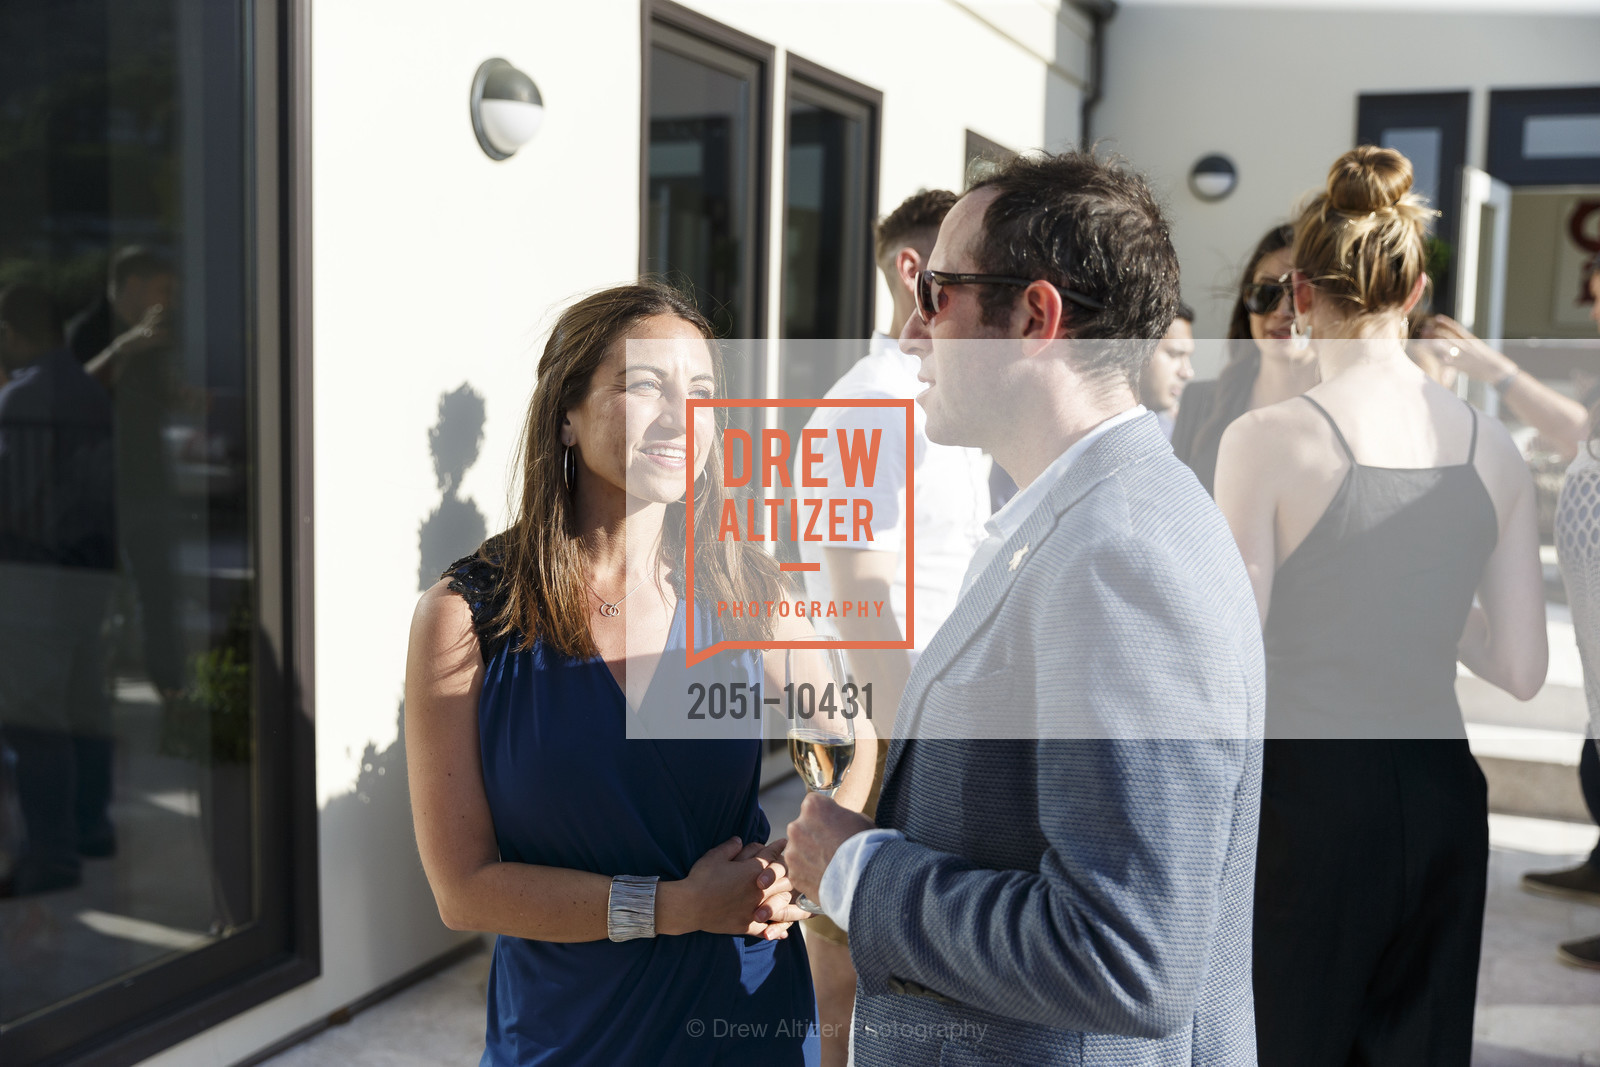 Atmosphere, Liz and Dan's Engagement Party, Private Residence, April 14th, 2018,Drew Altizer, Drew Altizer Photography, full-service agency, private events, San Francisco photographer, photographer california